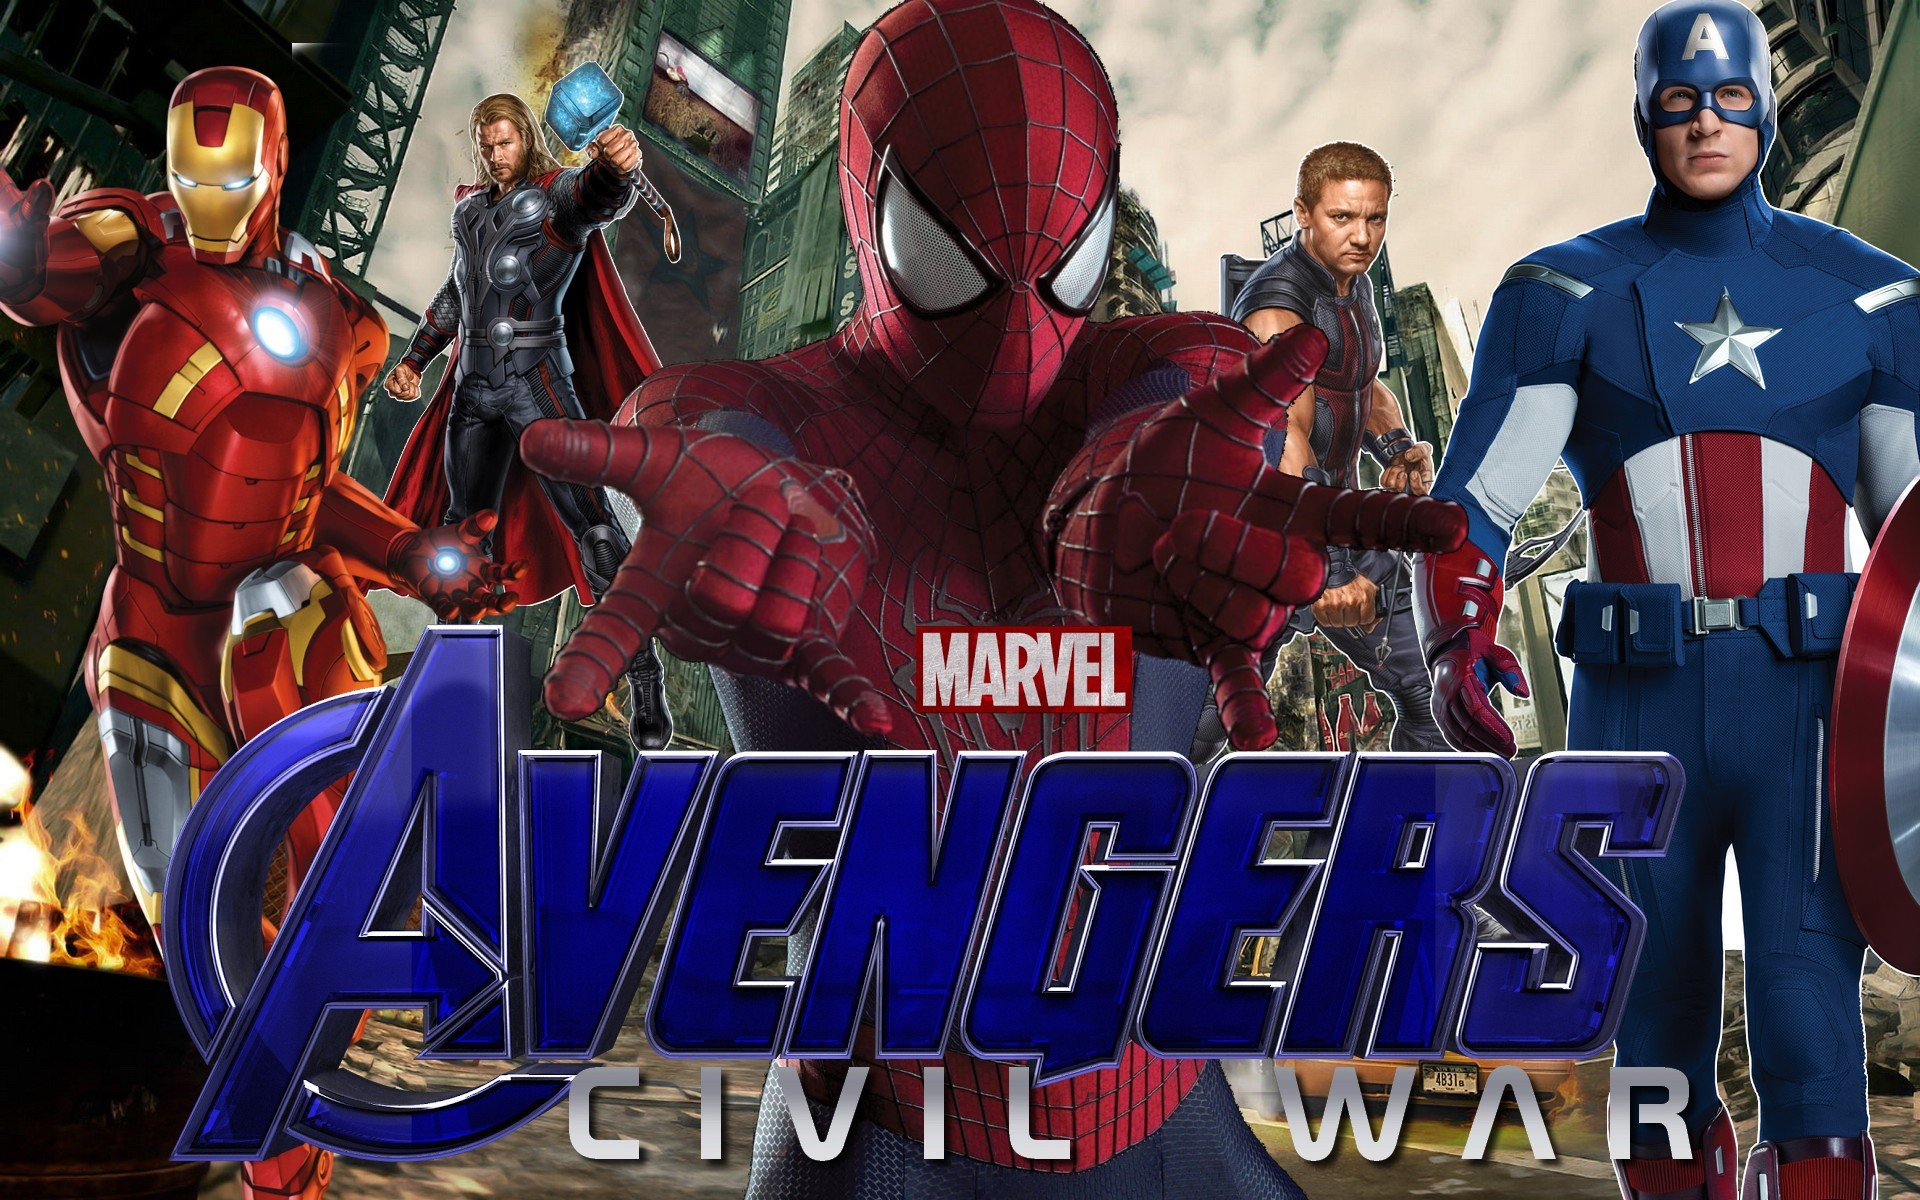 Marvels Avengers Civil War   Poster FAN MADE by Zedkate on 1920x1200